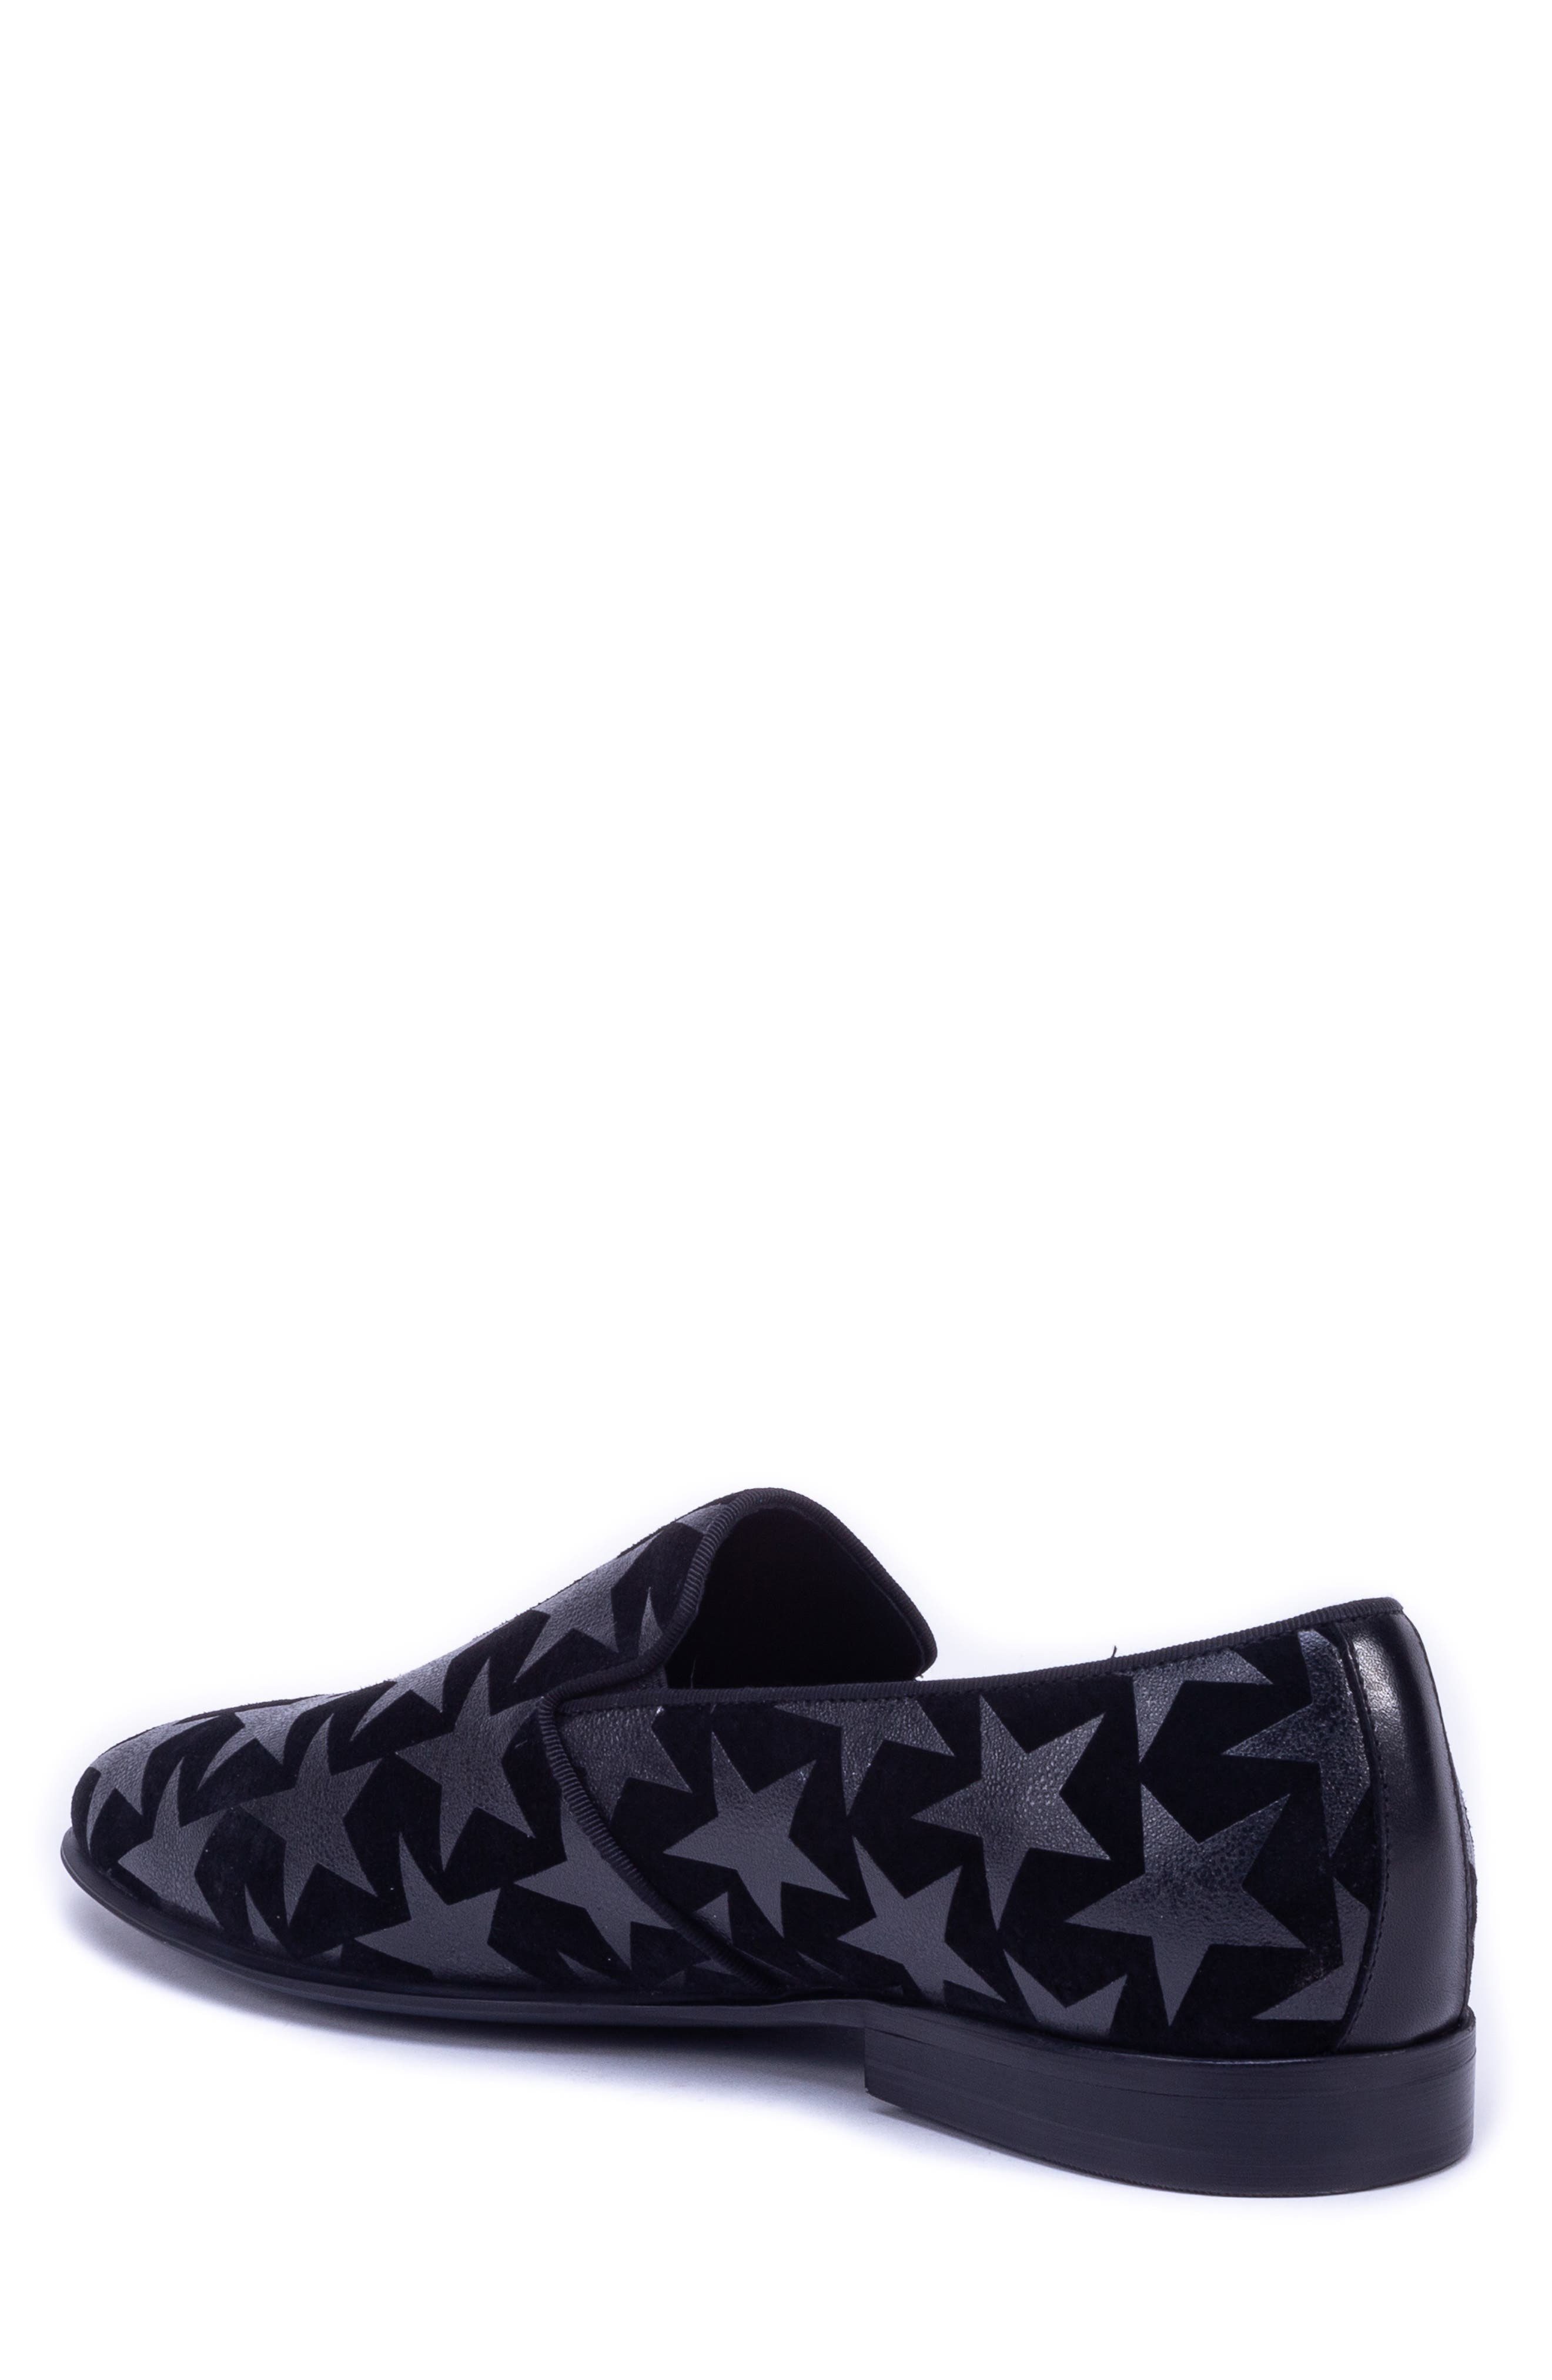 Badgley Mischka Hudson Loafer,                             Alternate thumbnail 2, color,                             BLACK SUEDE